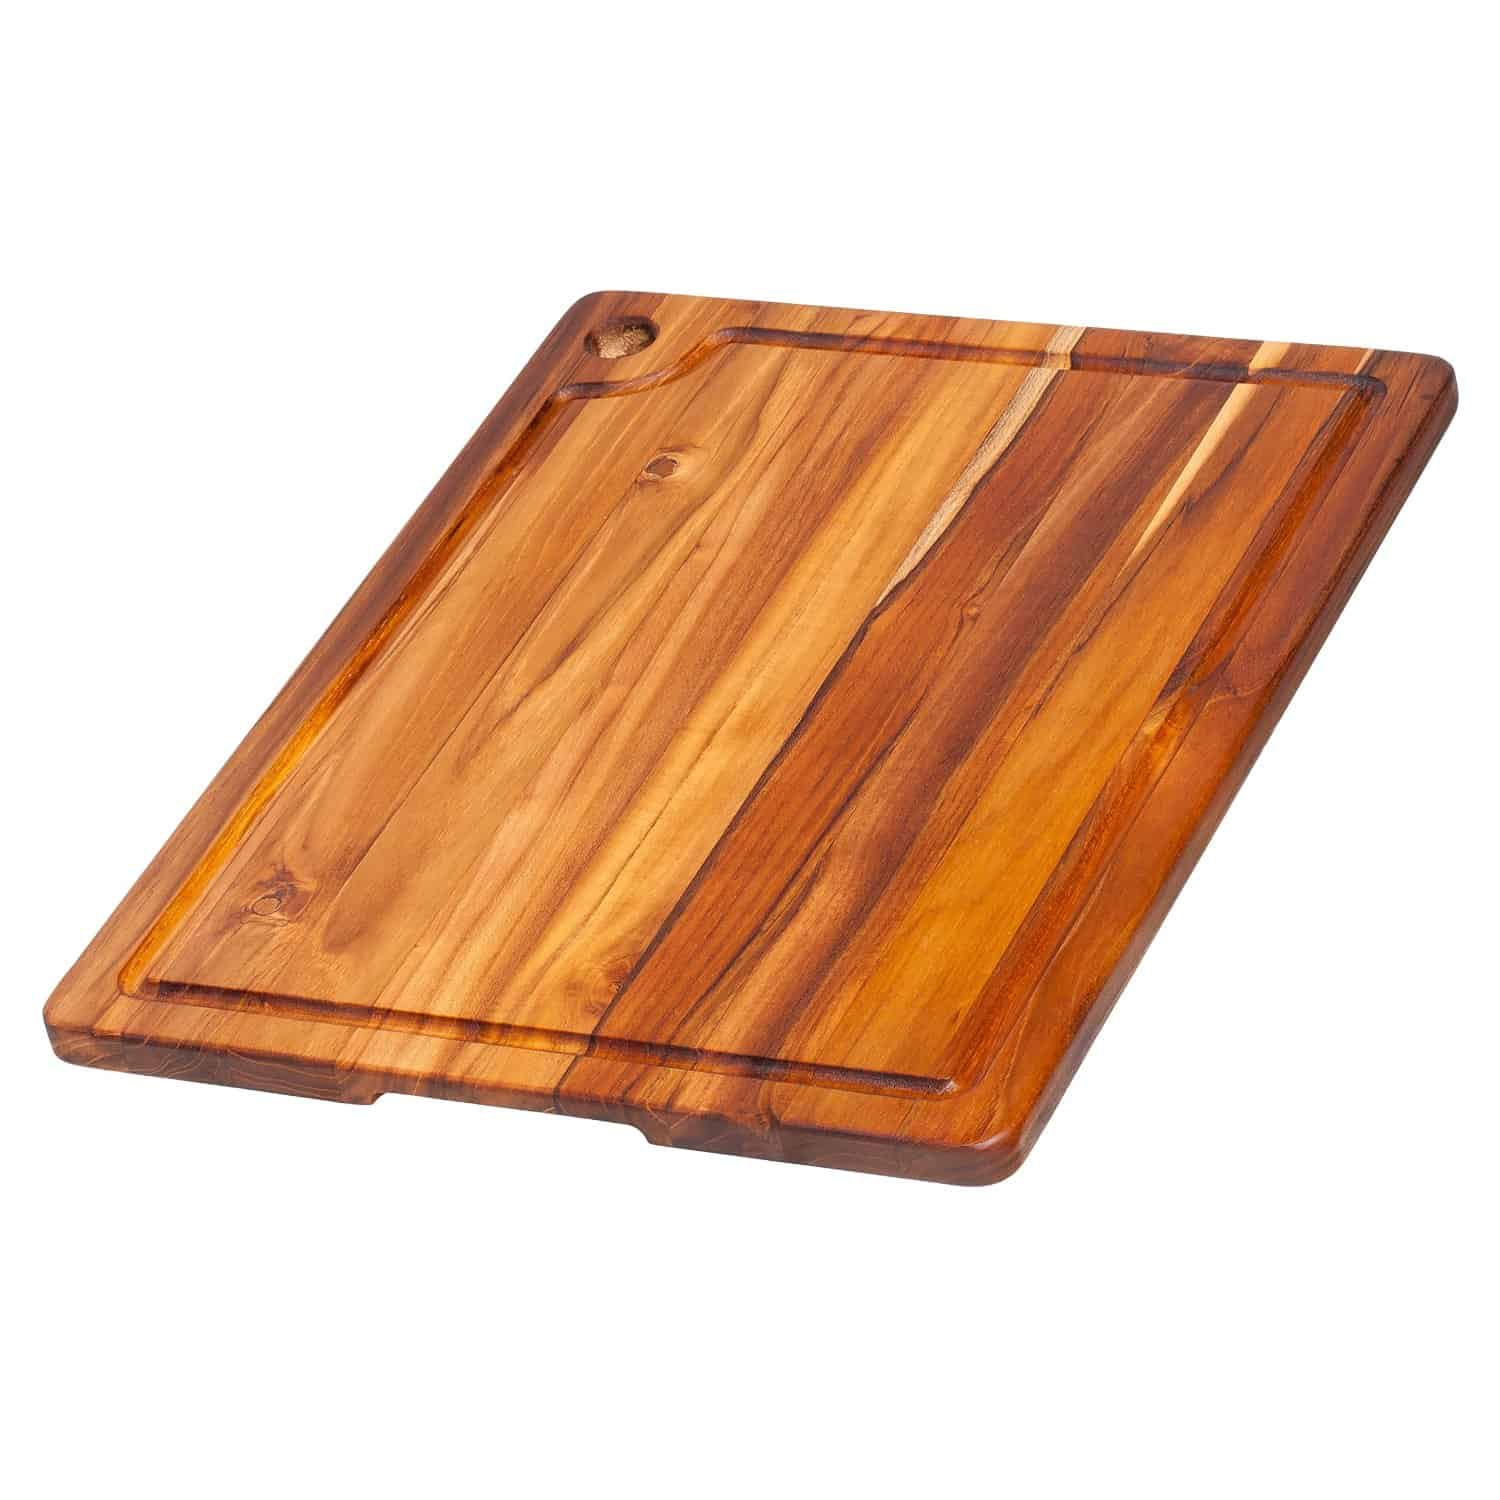 Cutting Board: Reviews & Buyer's Guide